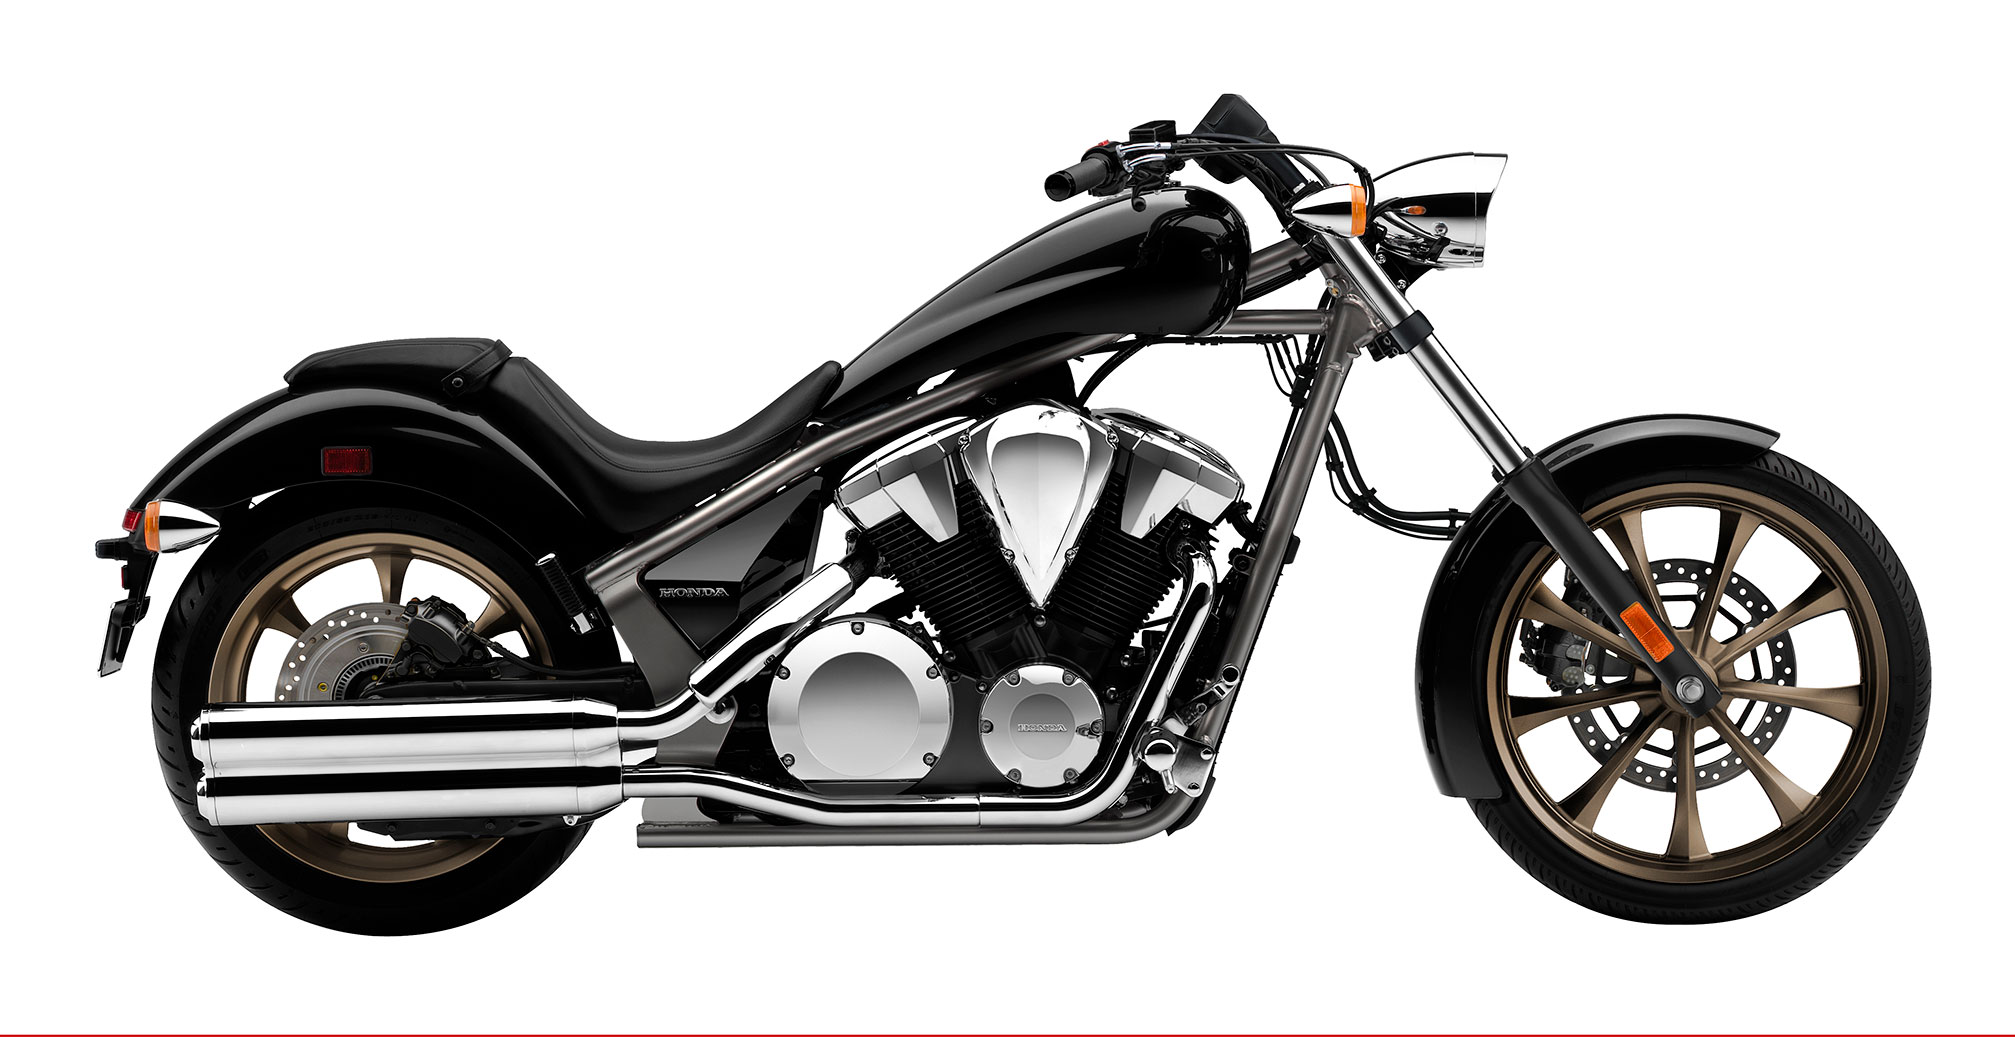 Honda Fury ABS 2015 images #83344